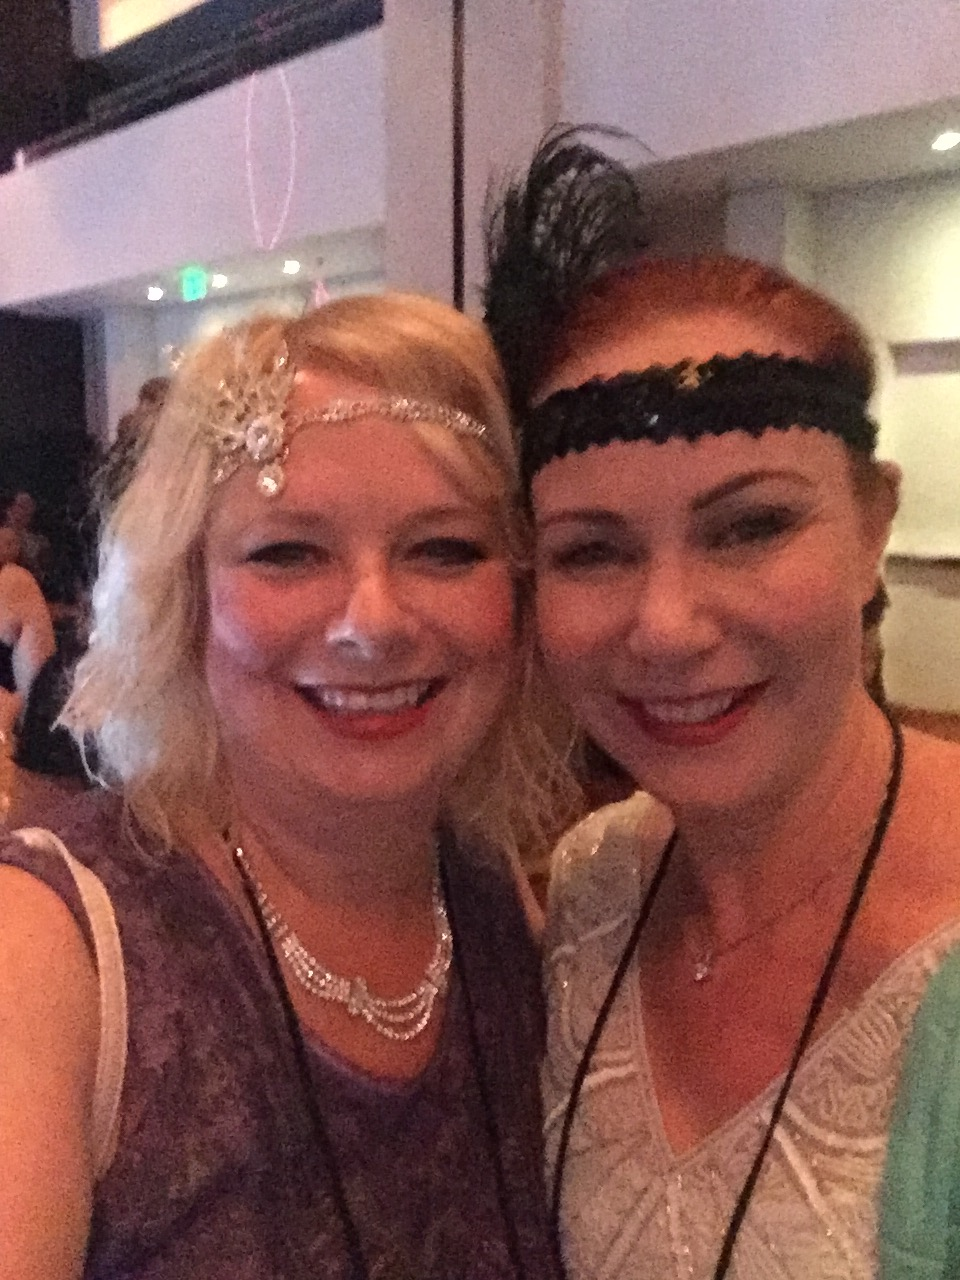 Roaring Twenties - Getting my Great Gatsby on with A S Fenichel (Andrea)